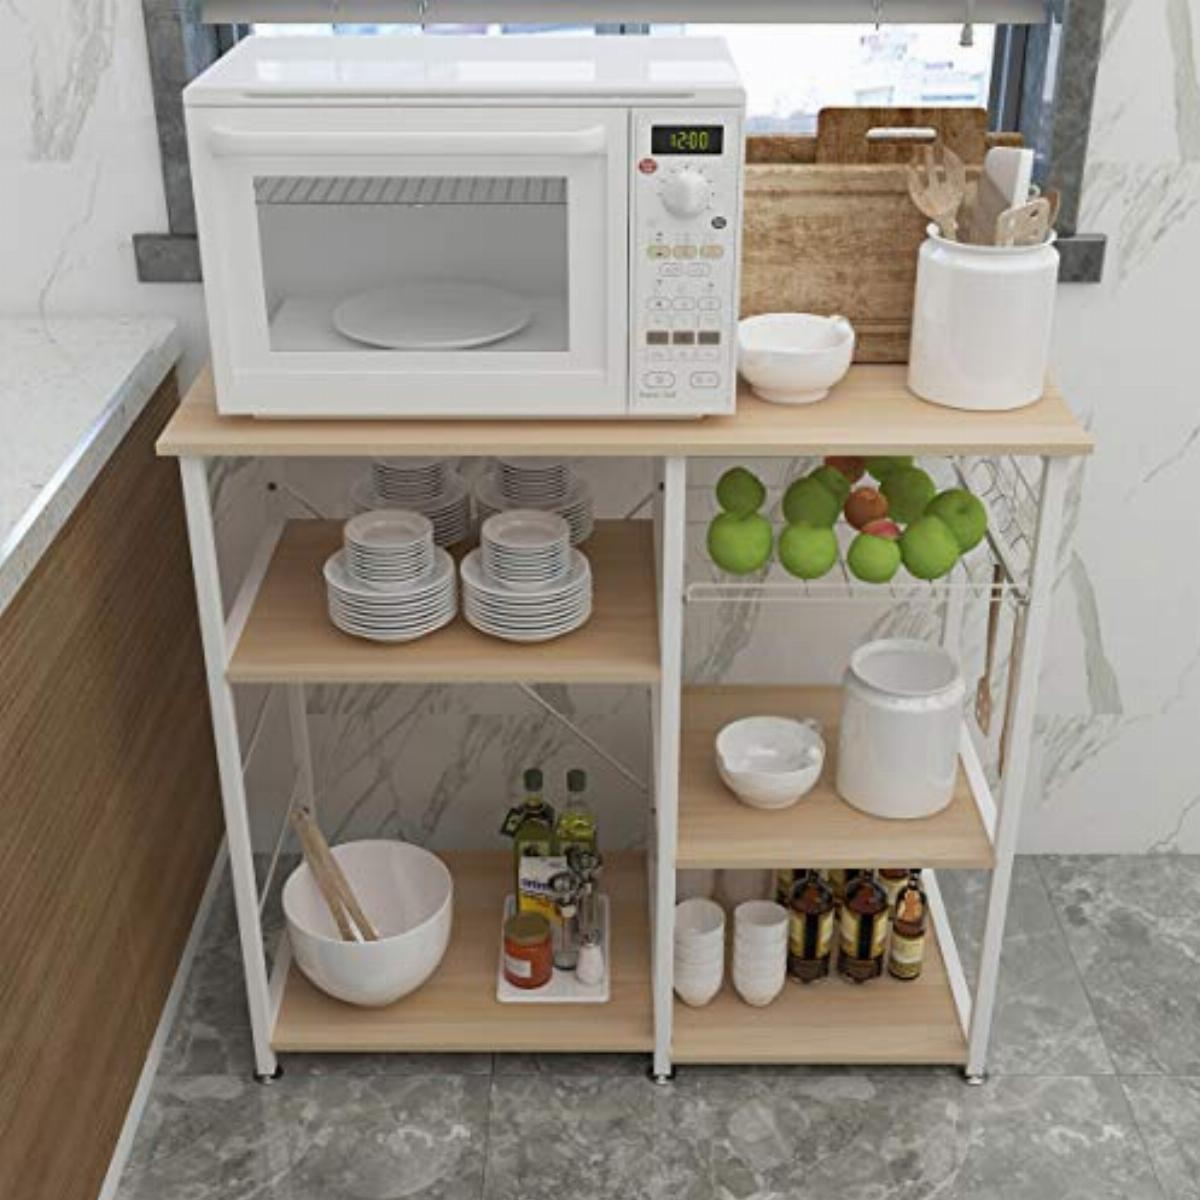 https www comparus co uk products sogesfurniture 3 tier kitchen bakers rack utility shelf microwave stand with storage and drawer storage cart workstation shelfwhite maple bhus w5s m 764459 htm